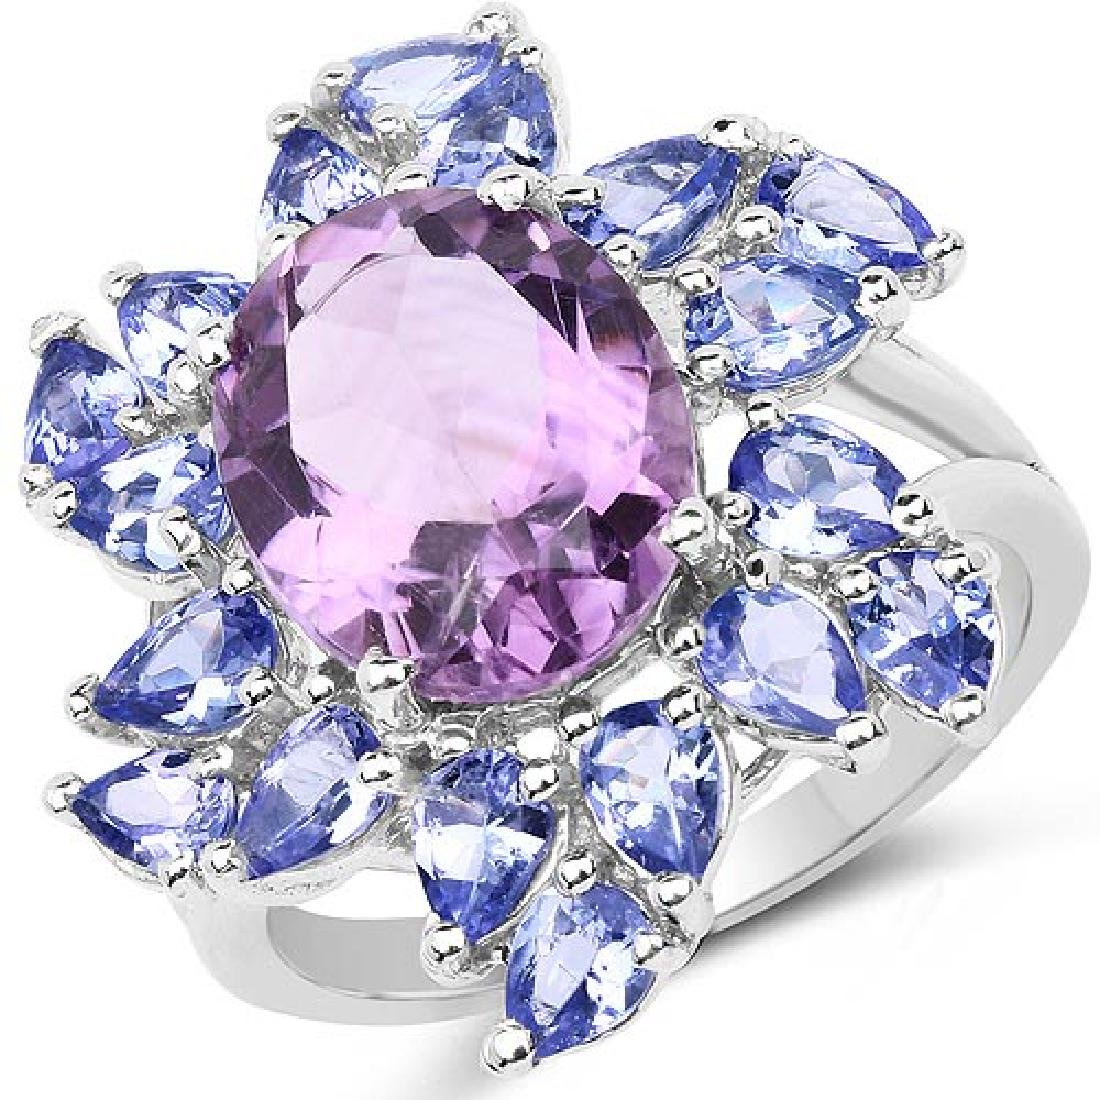 5.72 Carat Genuine Amethyst and Tanzanite .925 Sterling